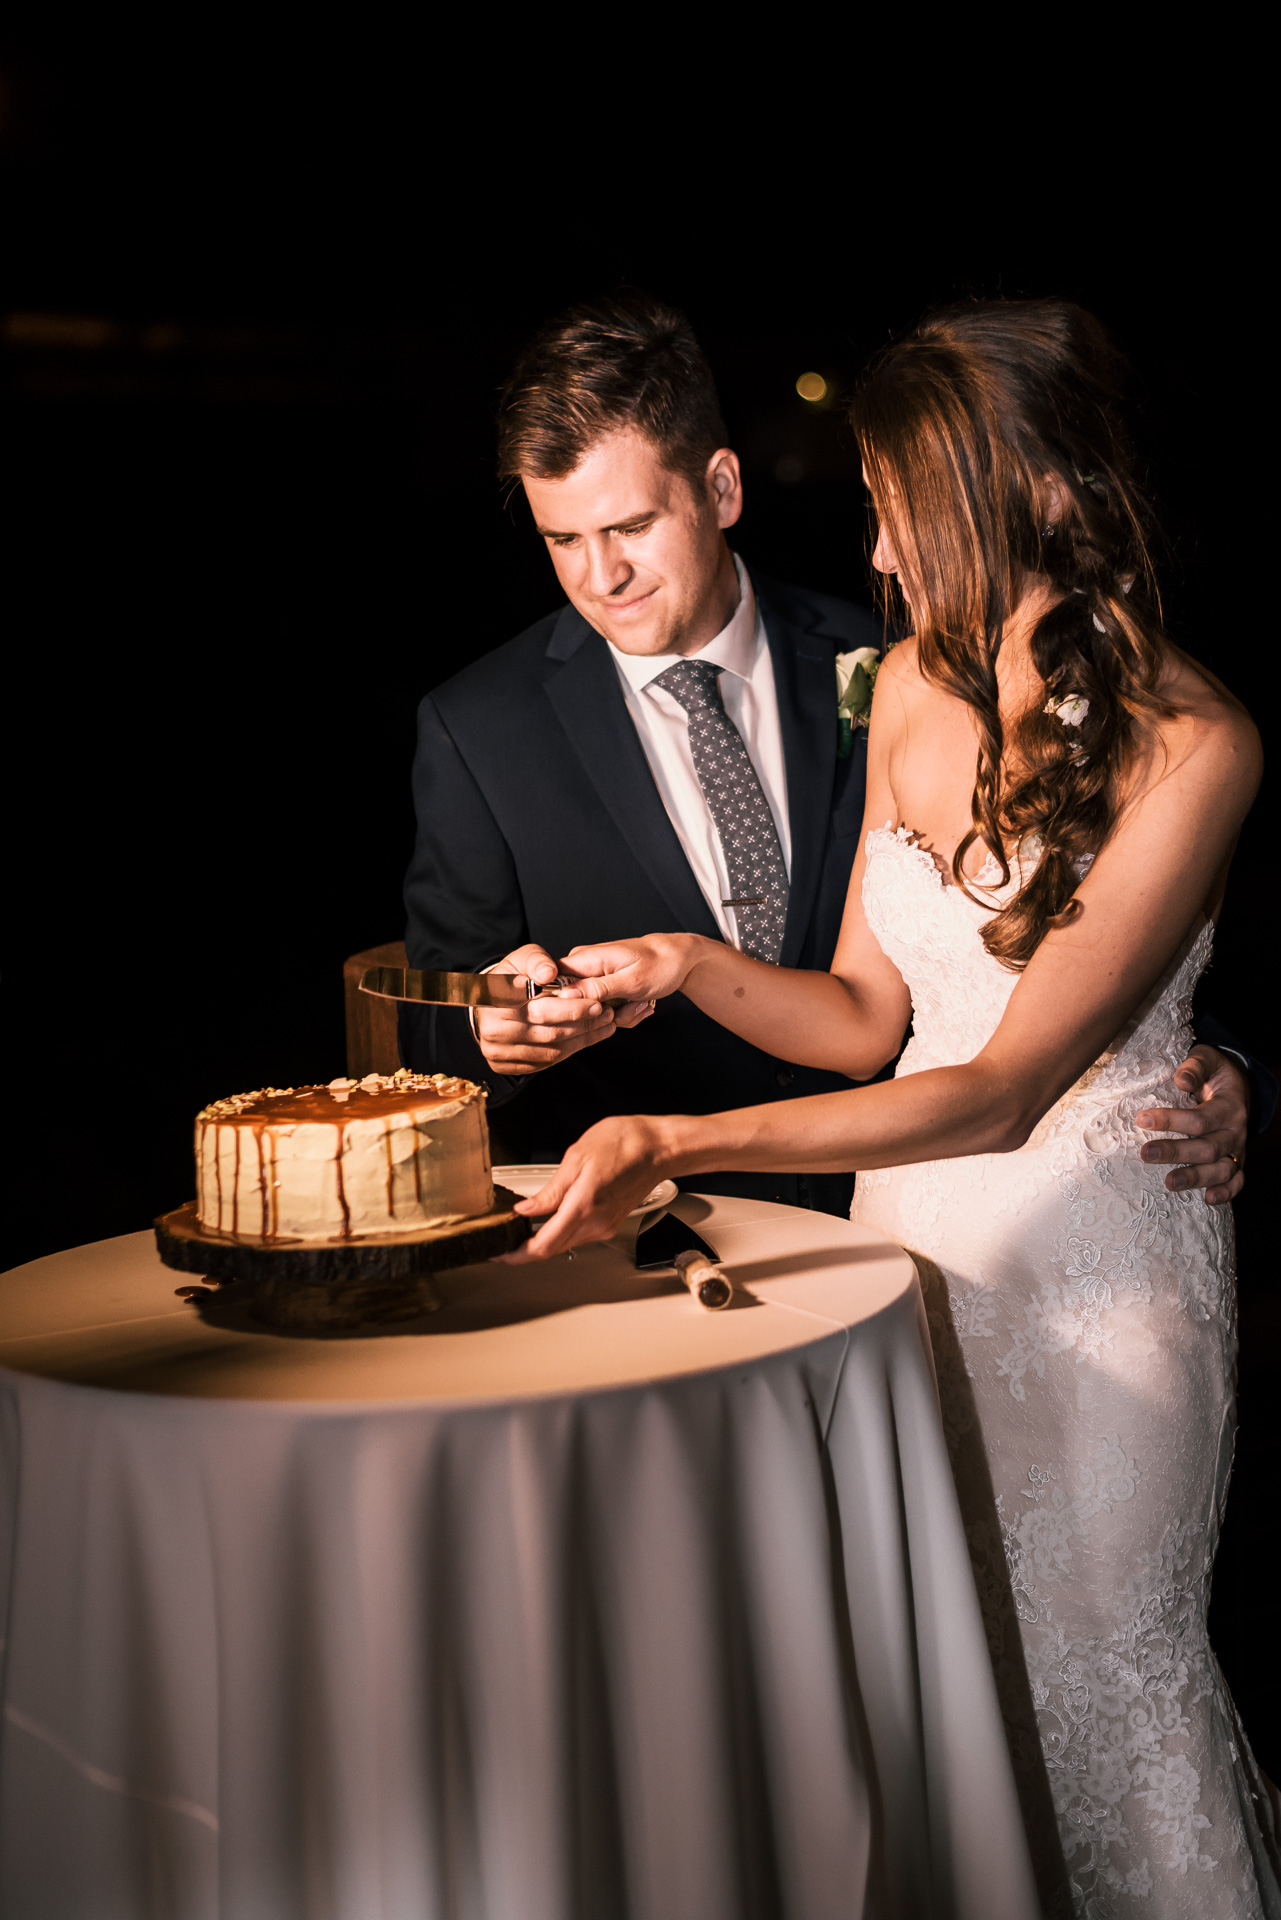 bride and groom cut the wedding cake at the secret garden located at the Historic Parish ranch in Oak Glen California